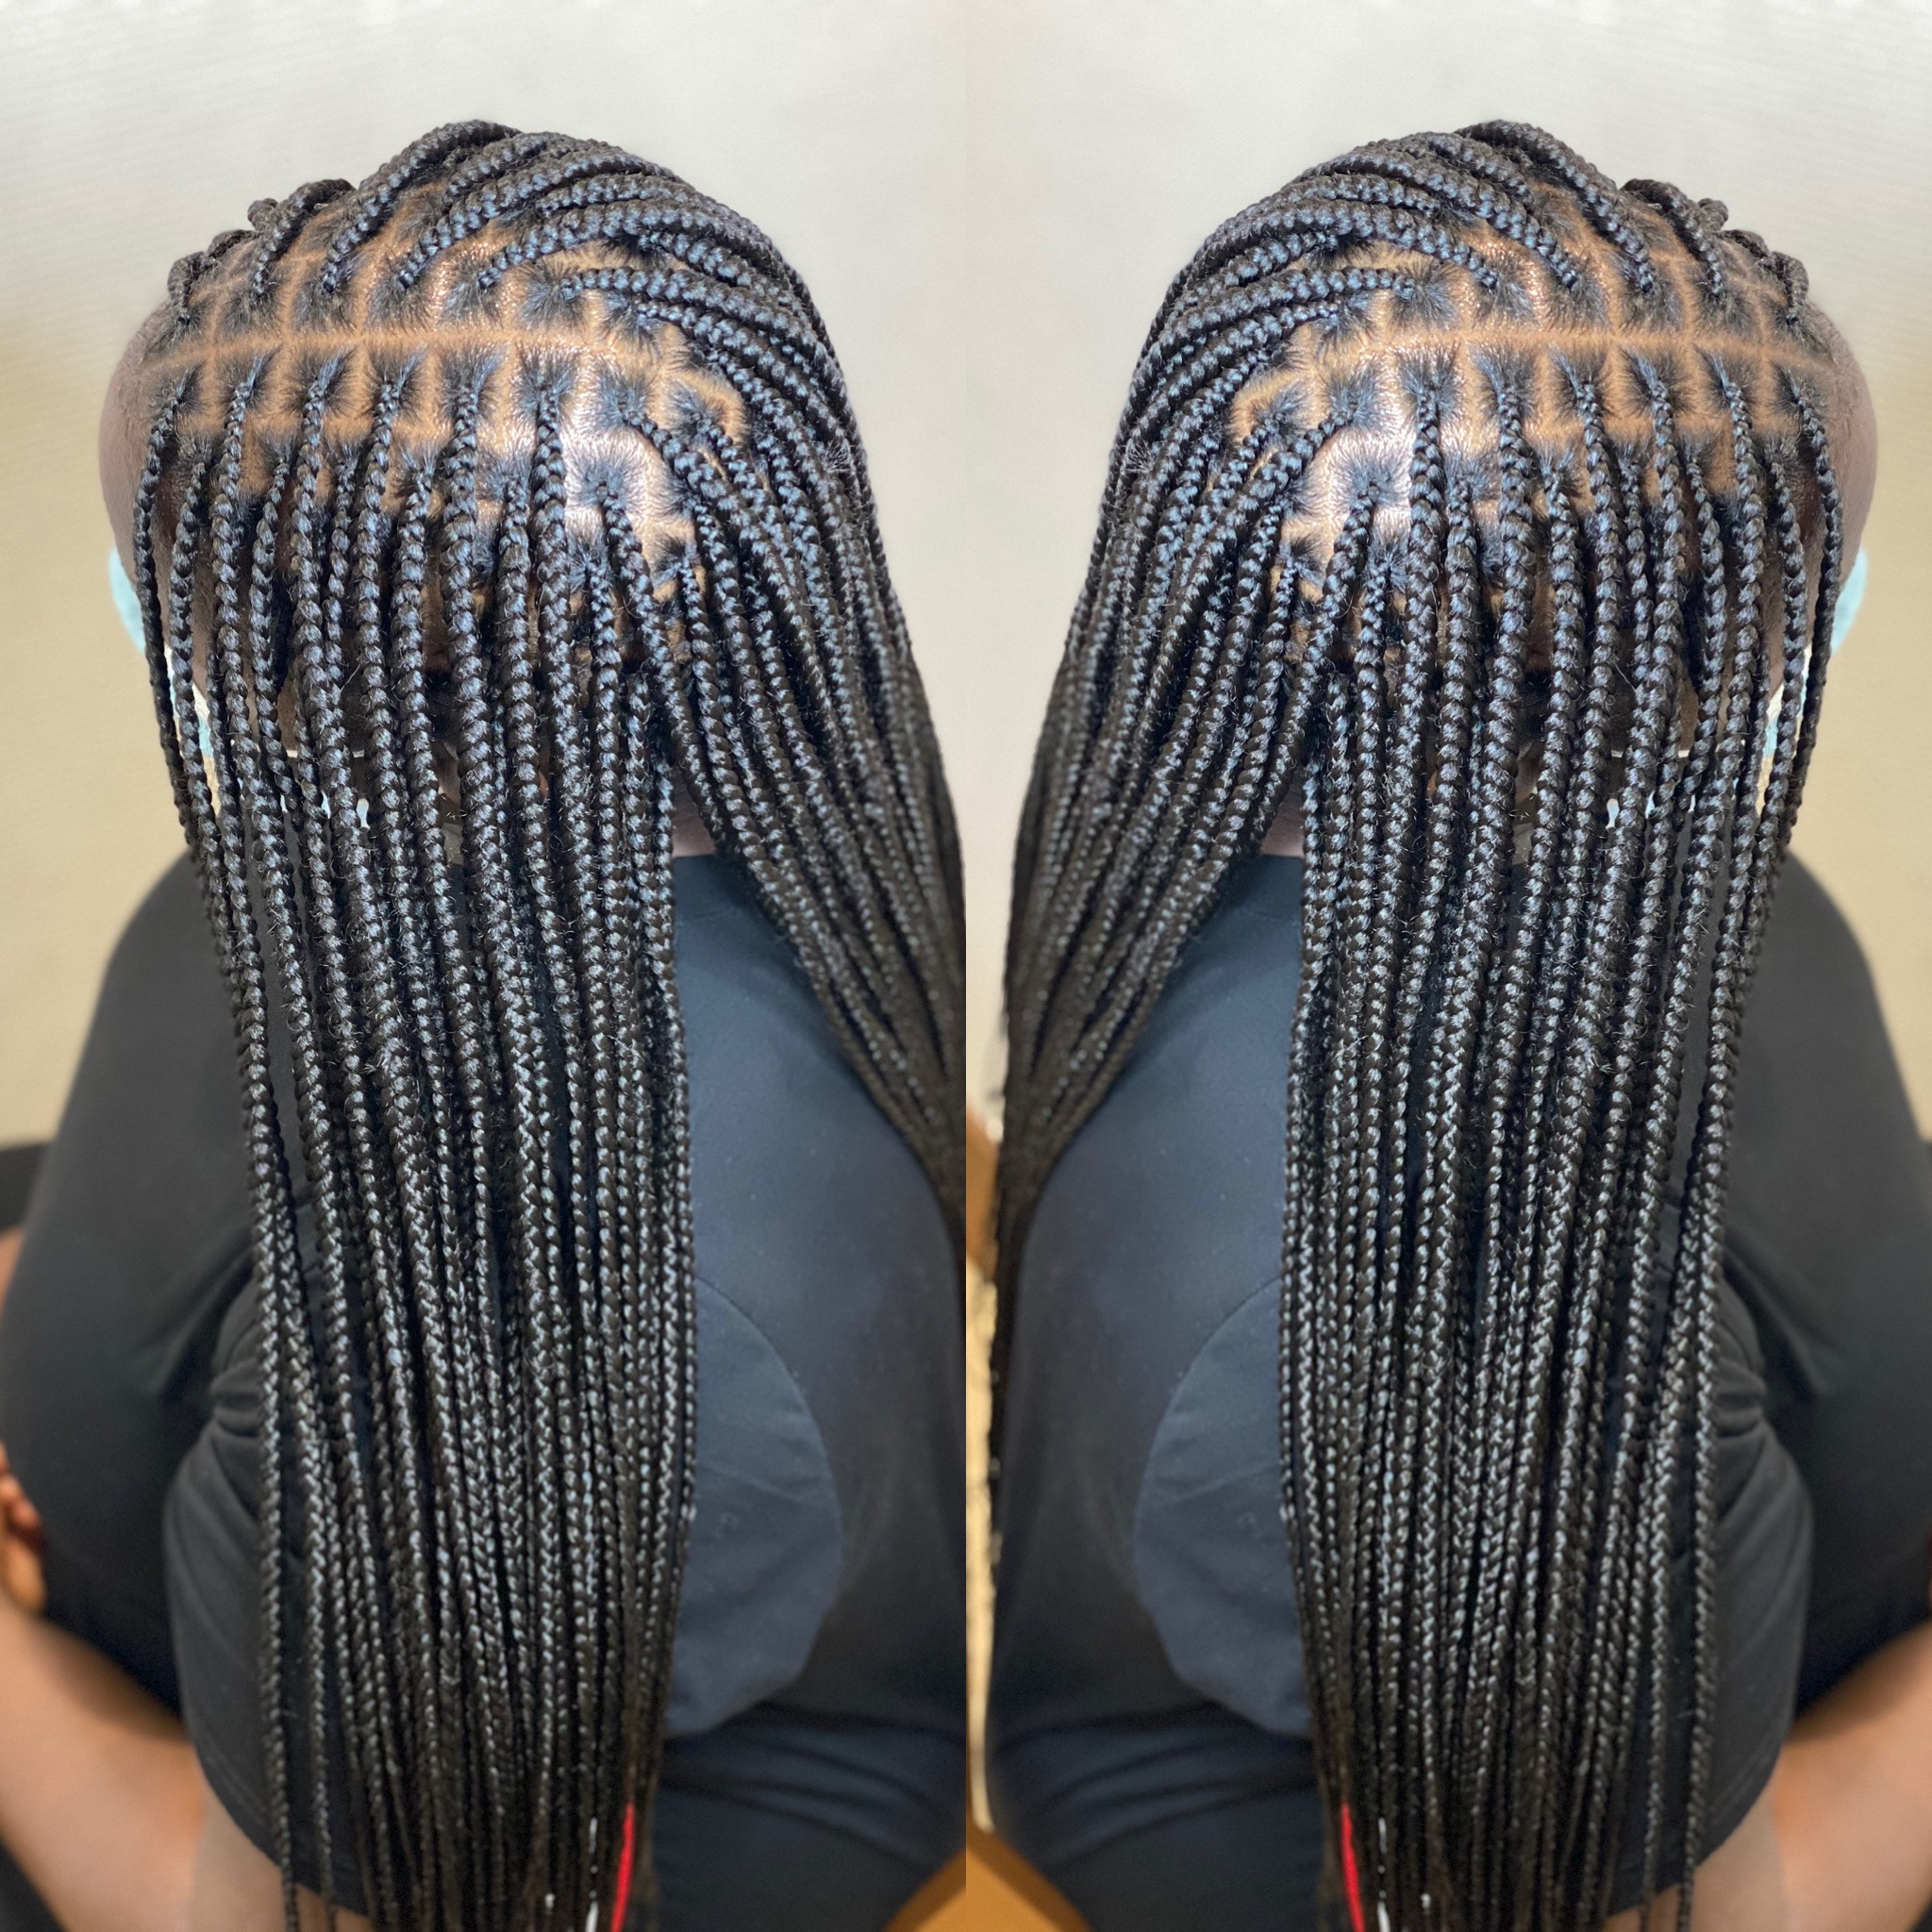 salon de coiffure afro tresse tresses box braids crochet braids vanilles tissages paris 75 77 78 91 92 93 94 95 QUWBLWBN